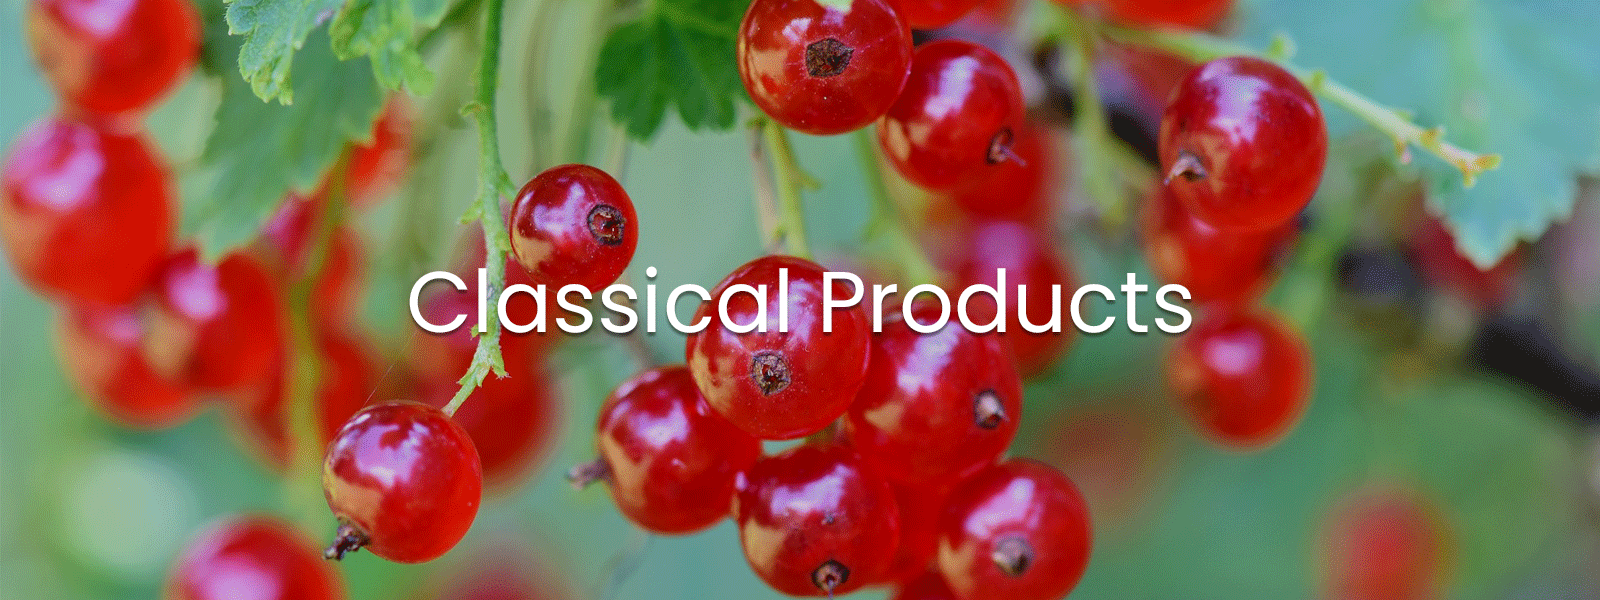 Classical Products